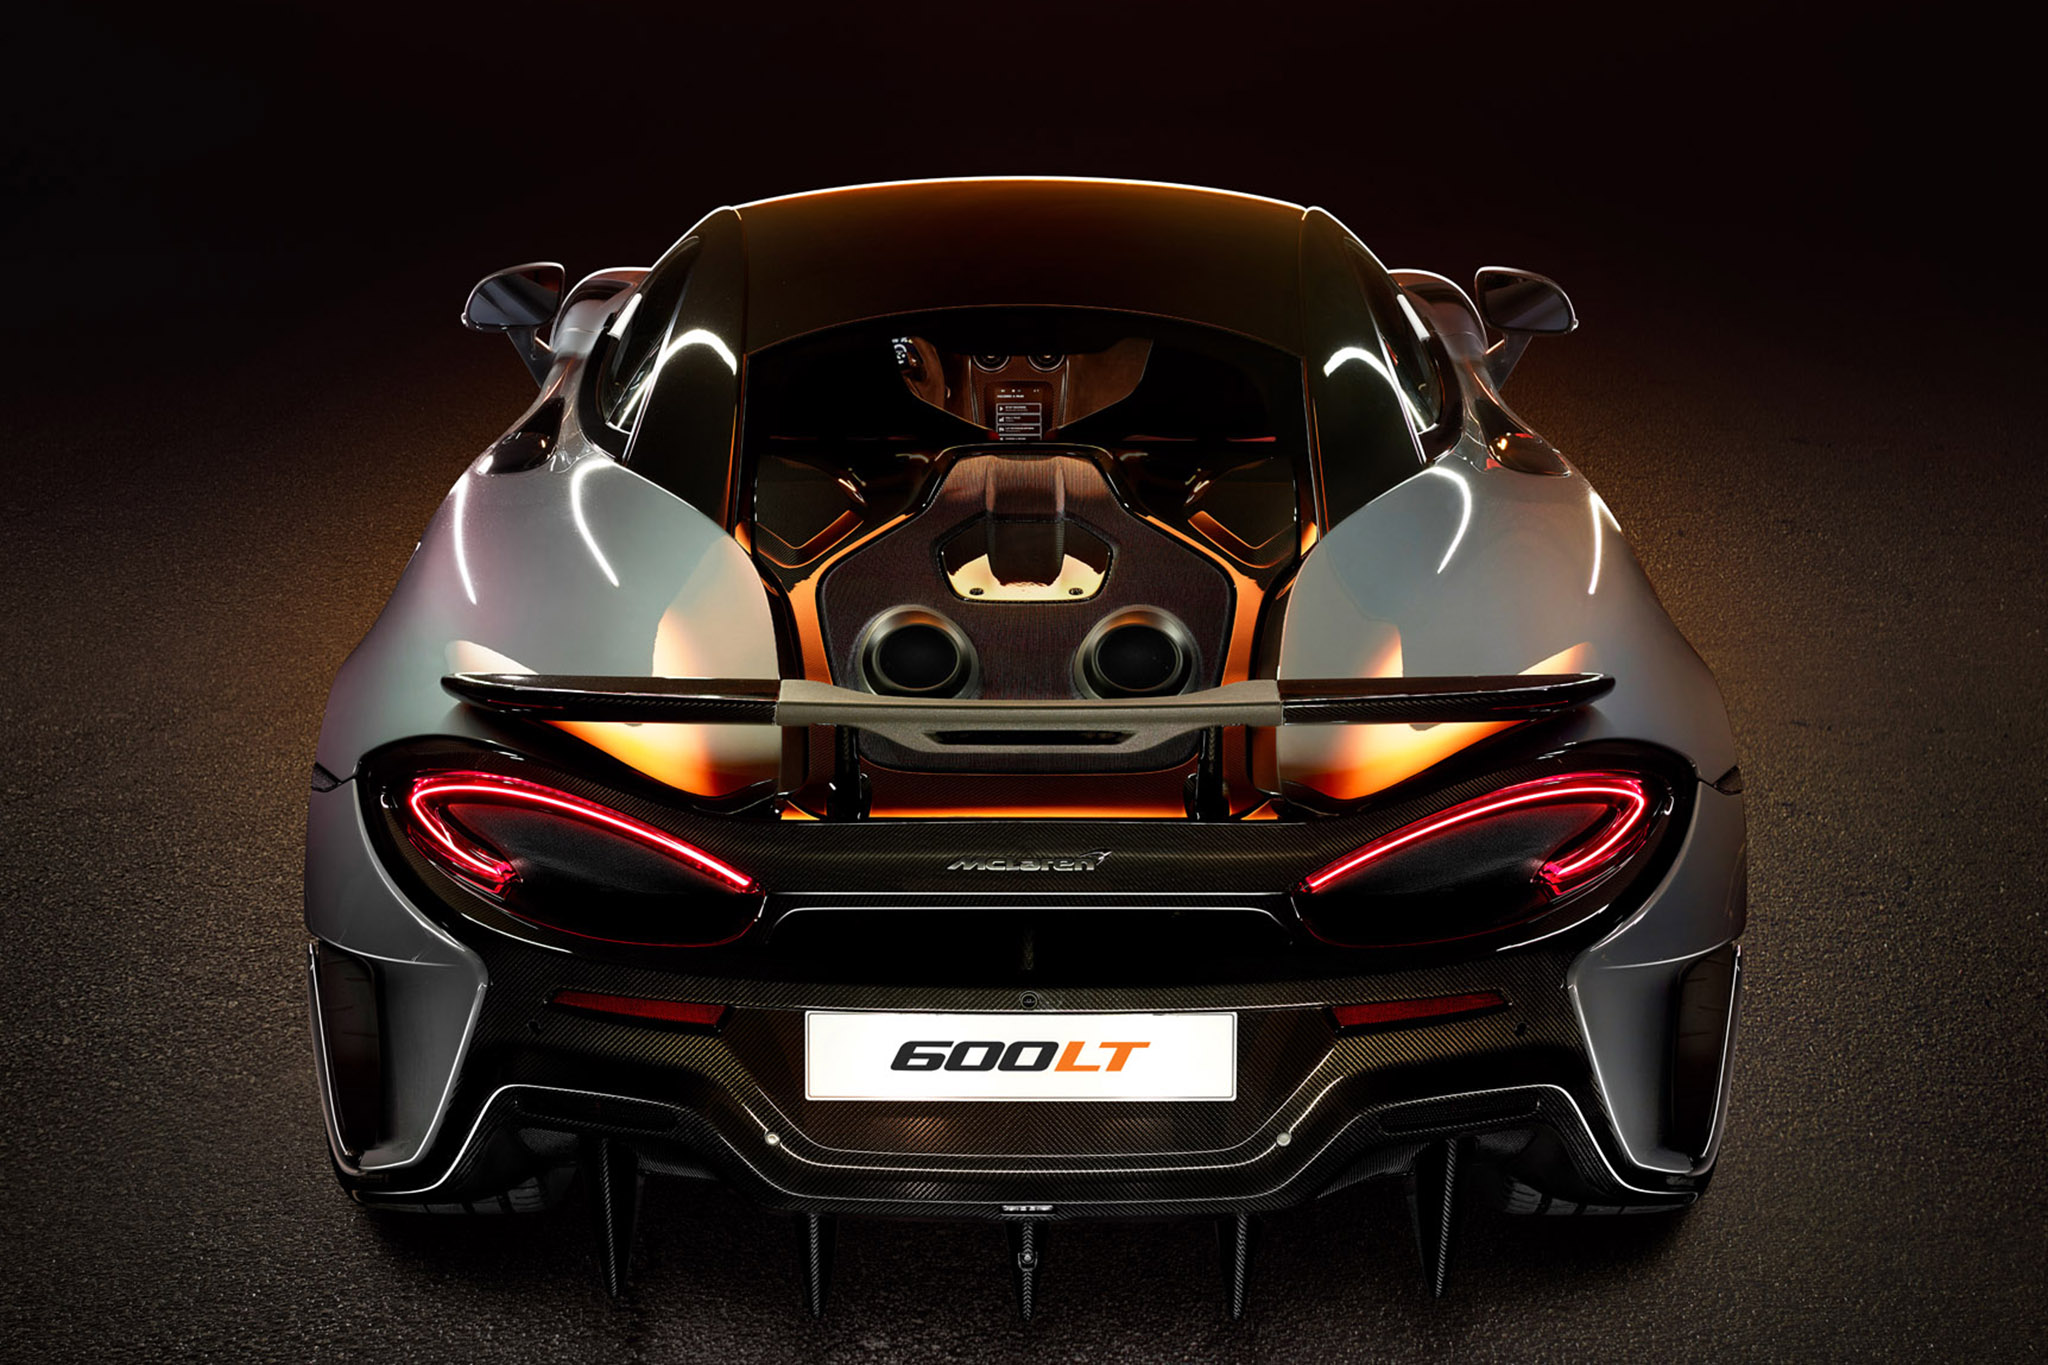 McLaren 600LT Debuts at Goodwood With $240,000 Price Tag - Motor Trend